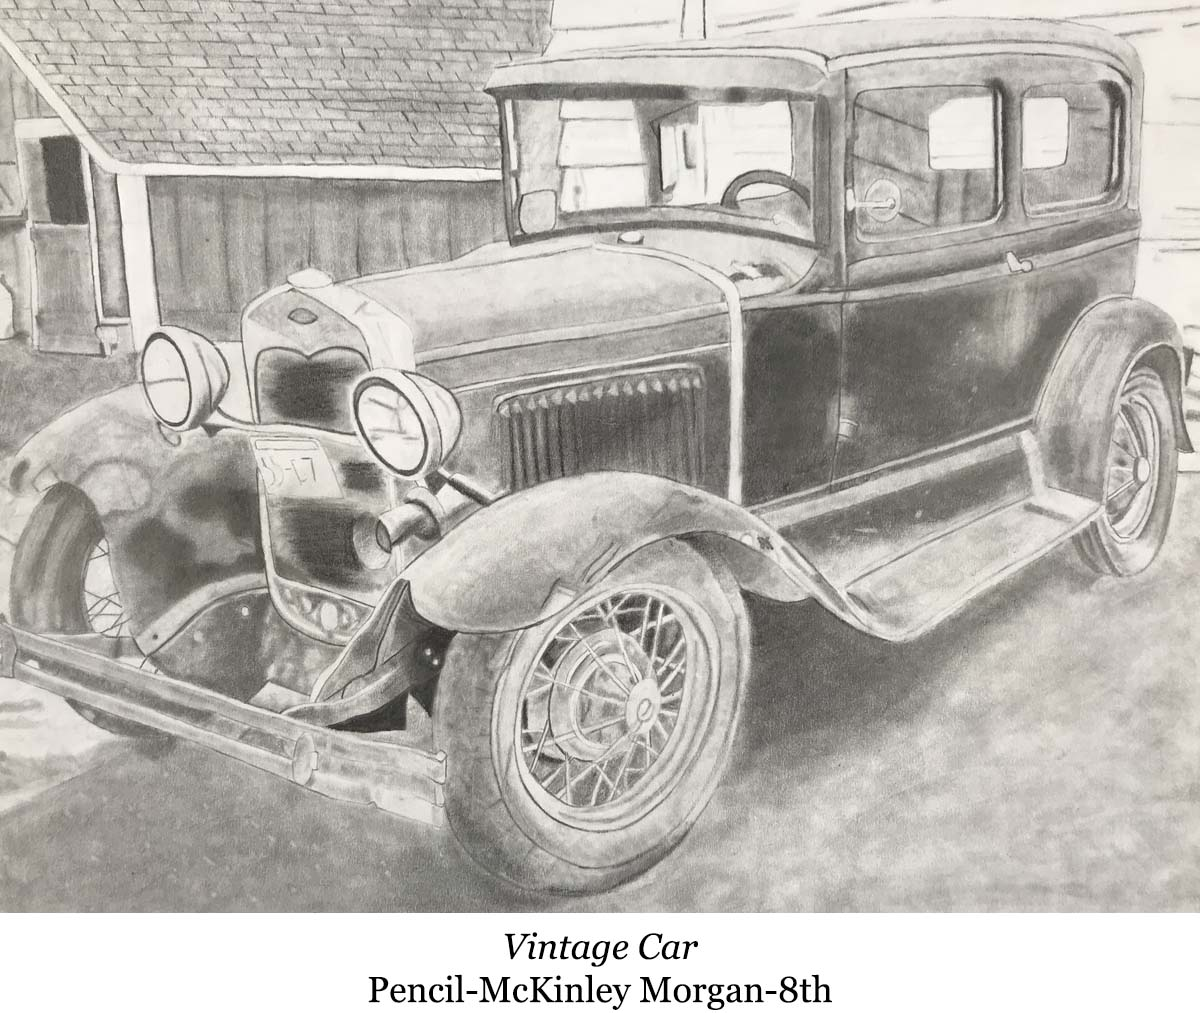 1587088203-vintage_car-pencil-mckinley_morgan-8th